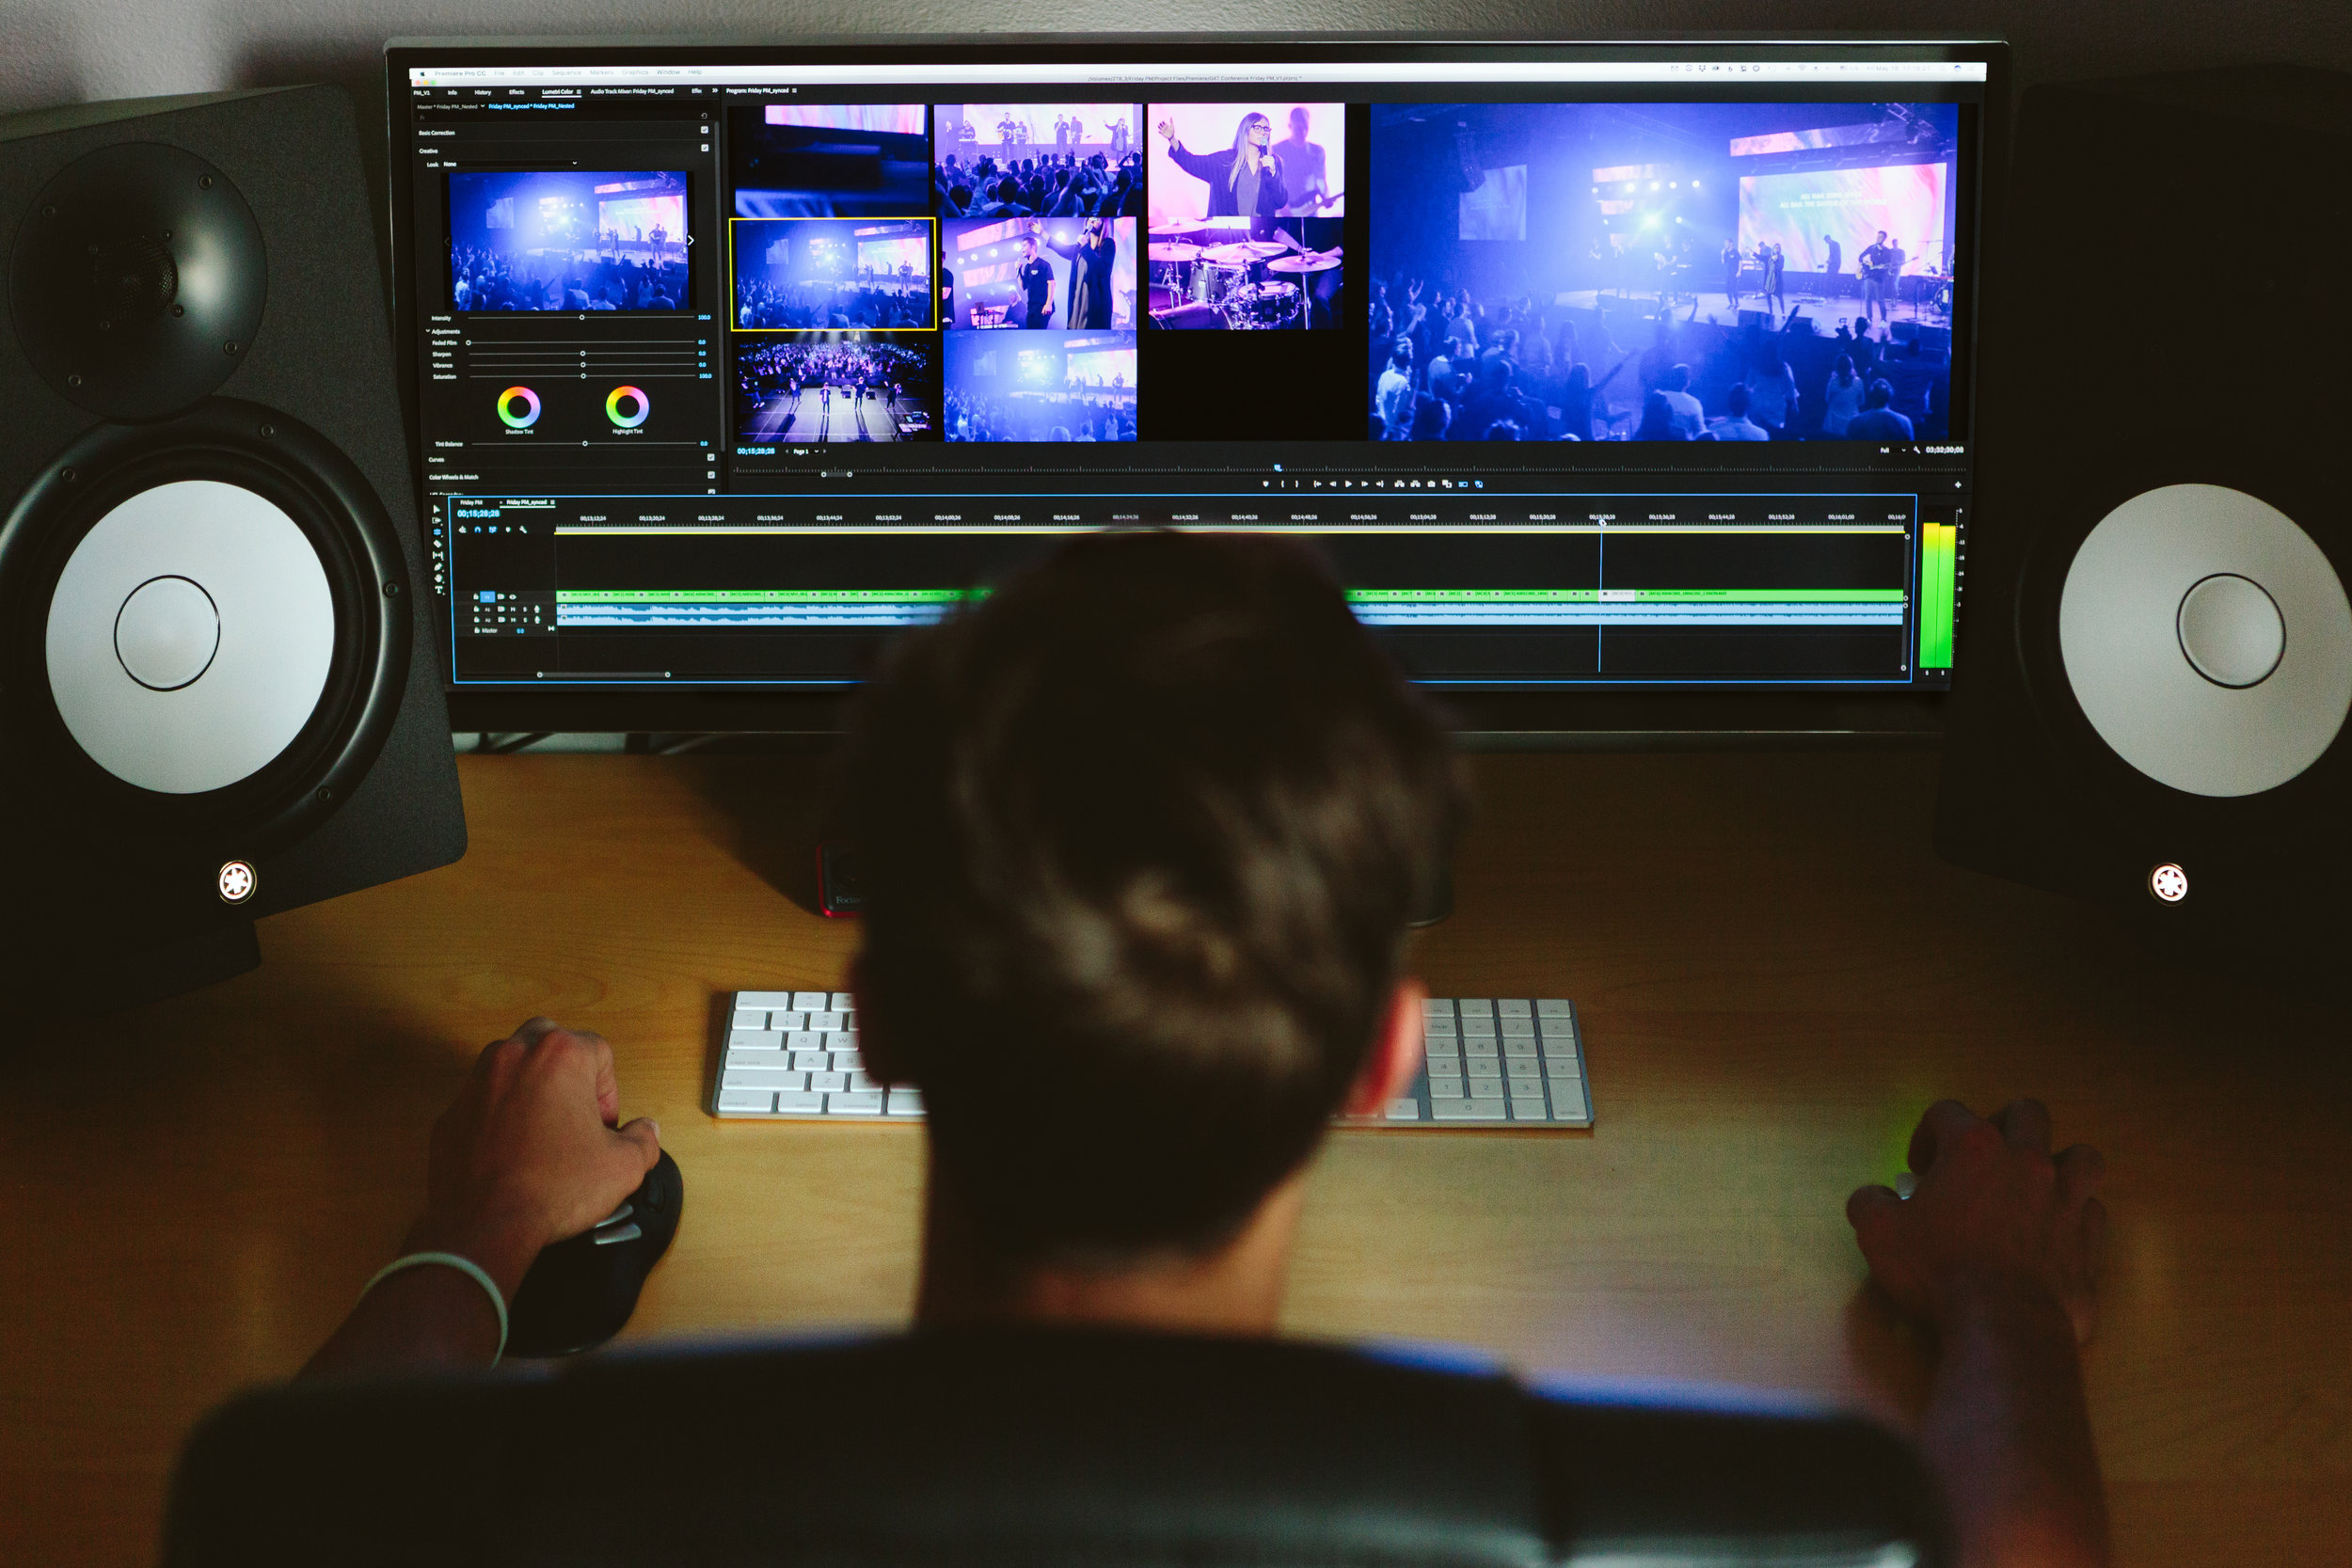 Revisions - Your video cost includes two rounds of revisions so that we can make any changes needed to ensure the finished piece meets your expectations and your standards.